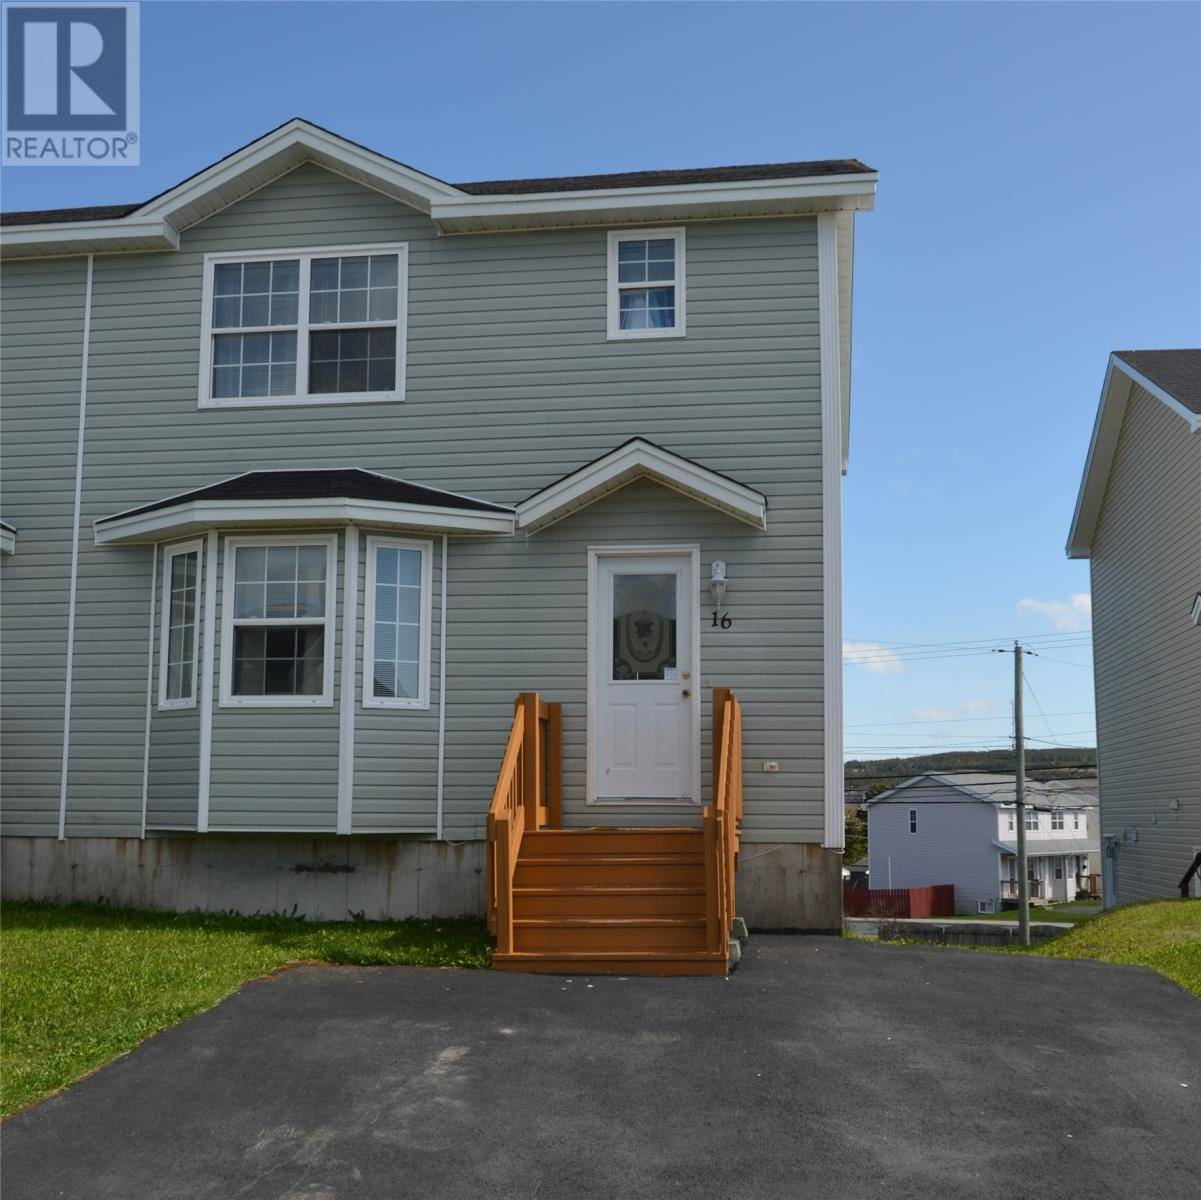 House for sale at 16 Meeker Pl St. John's Newfoundland - MLS: 1208855